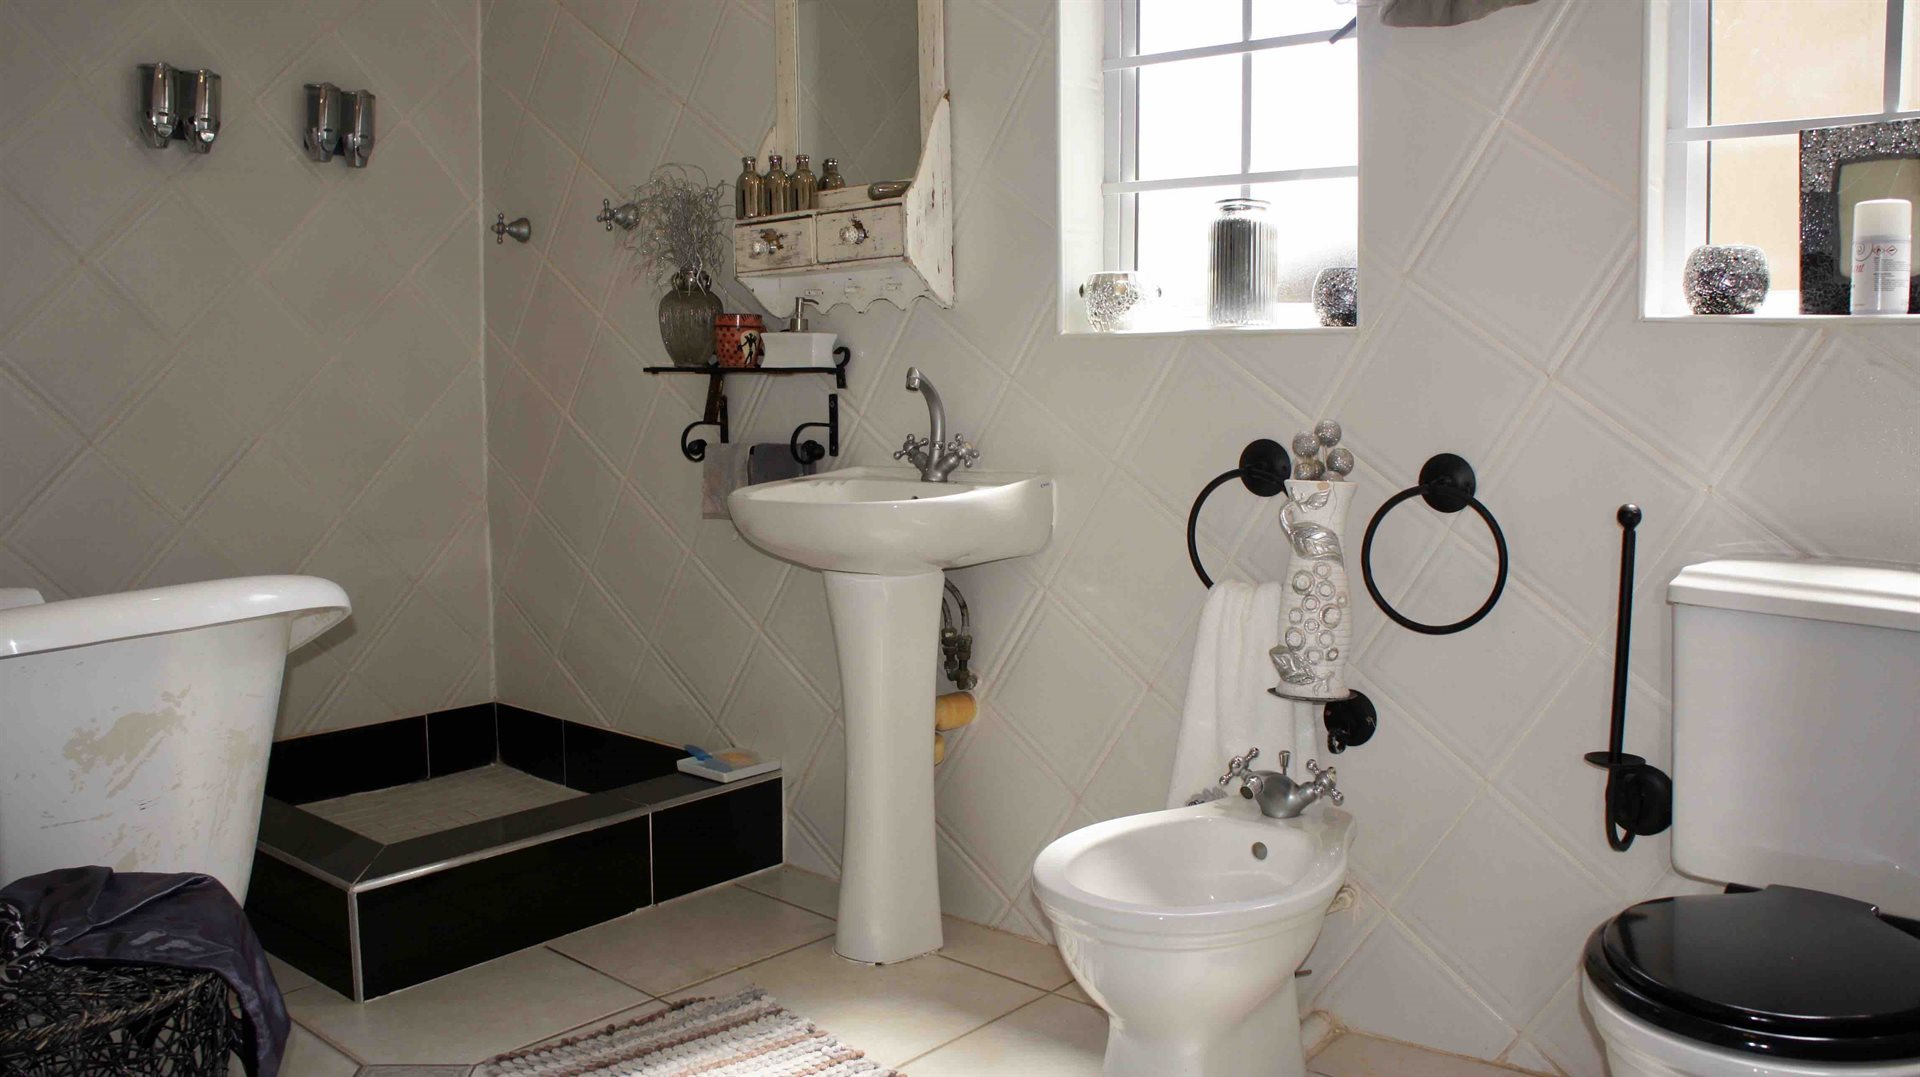 Meer En See property for sale. Ref No: 13544273. Picture no 13